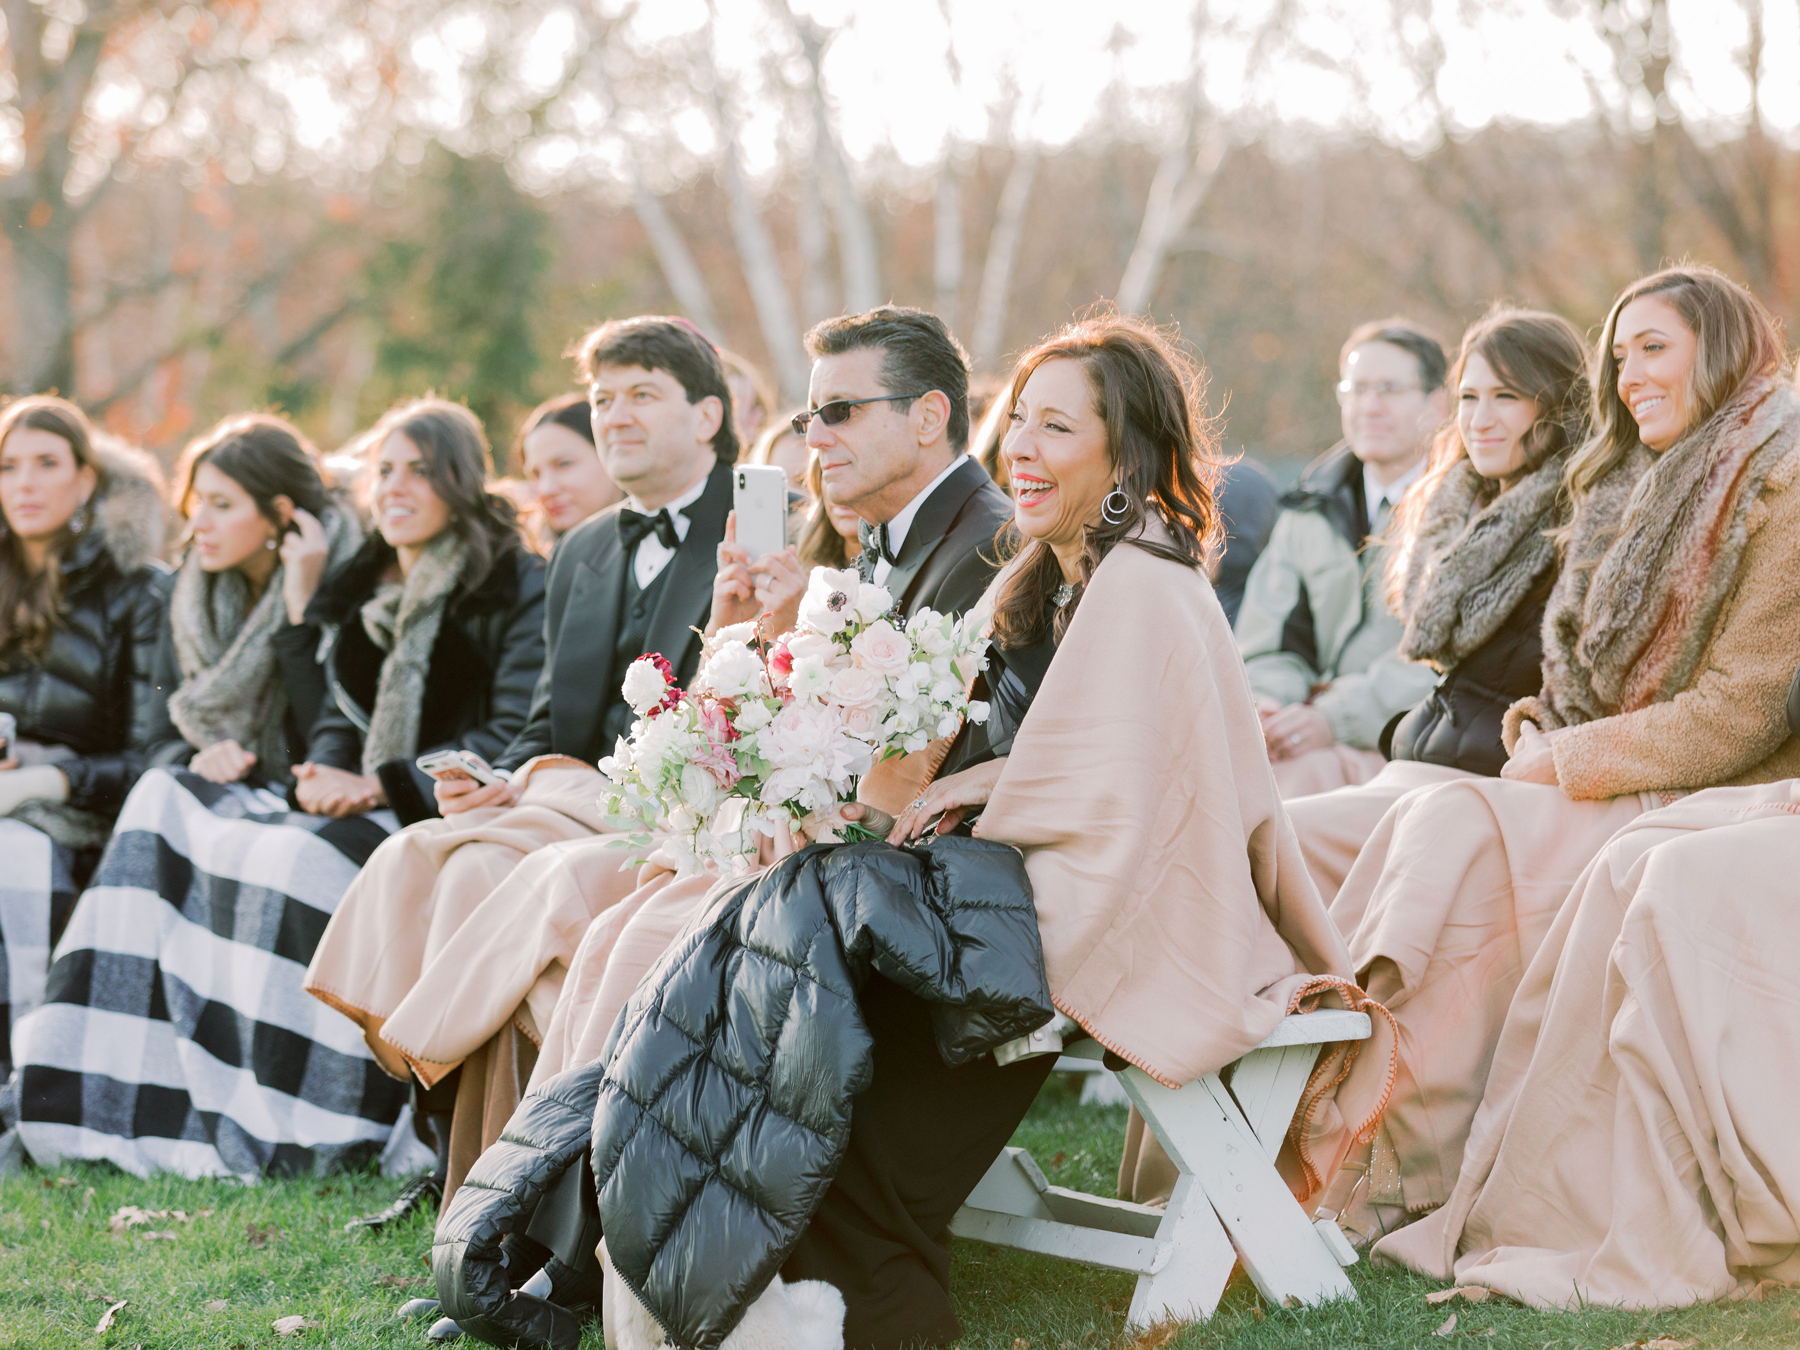 wedding guests with shawls and blankets during outdoor wedding ceremony